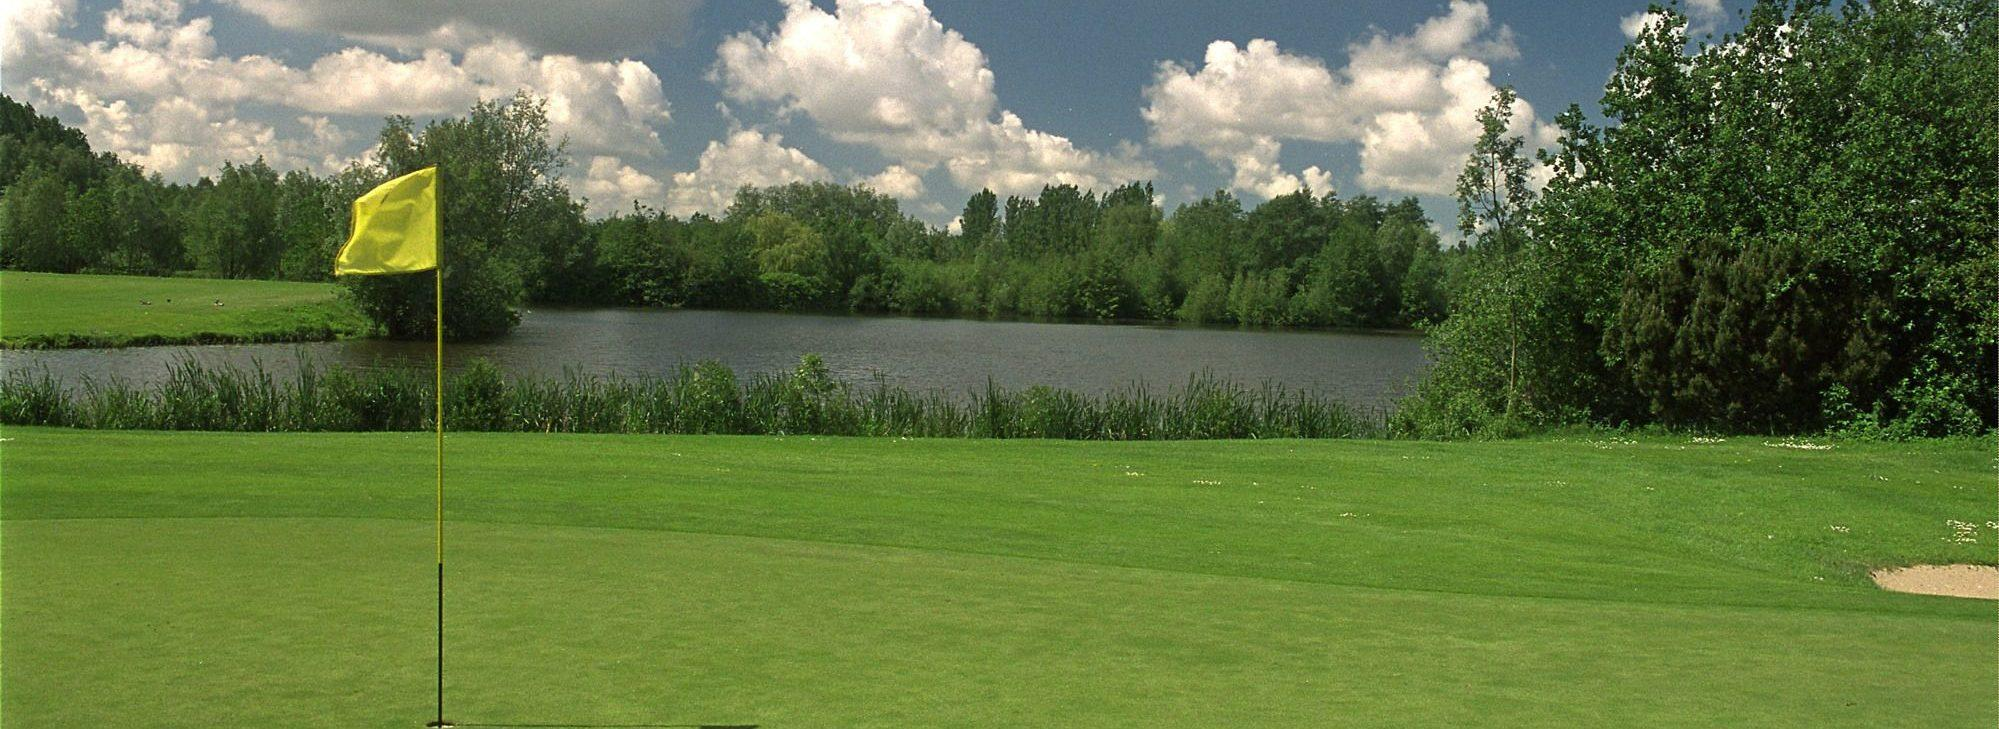 All The Damme Golf & Country Club's impressive golf course within sensational Bruges & Ypres.